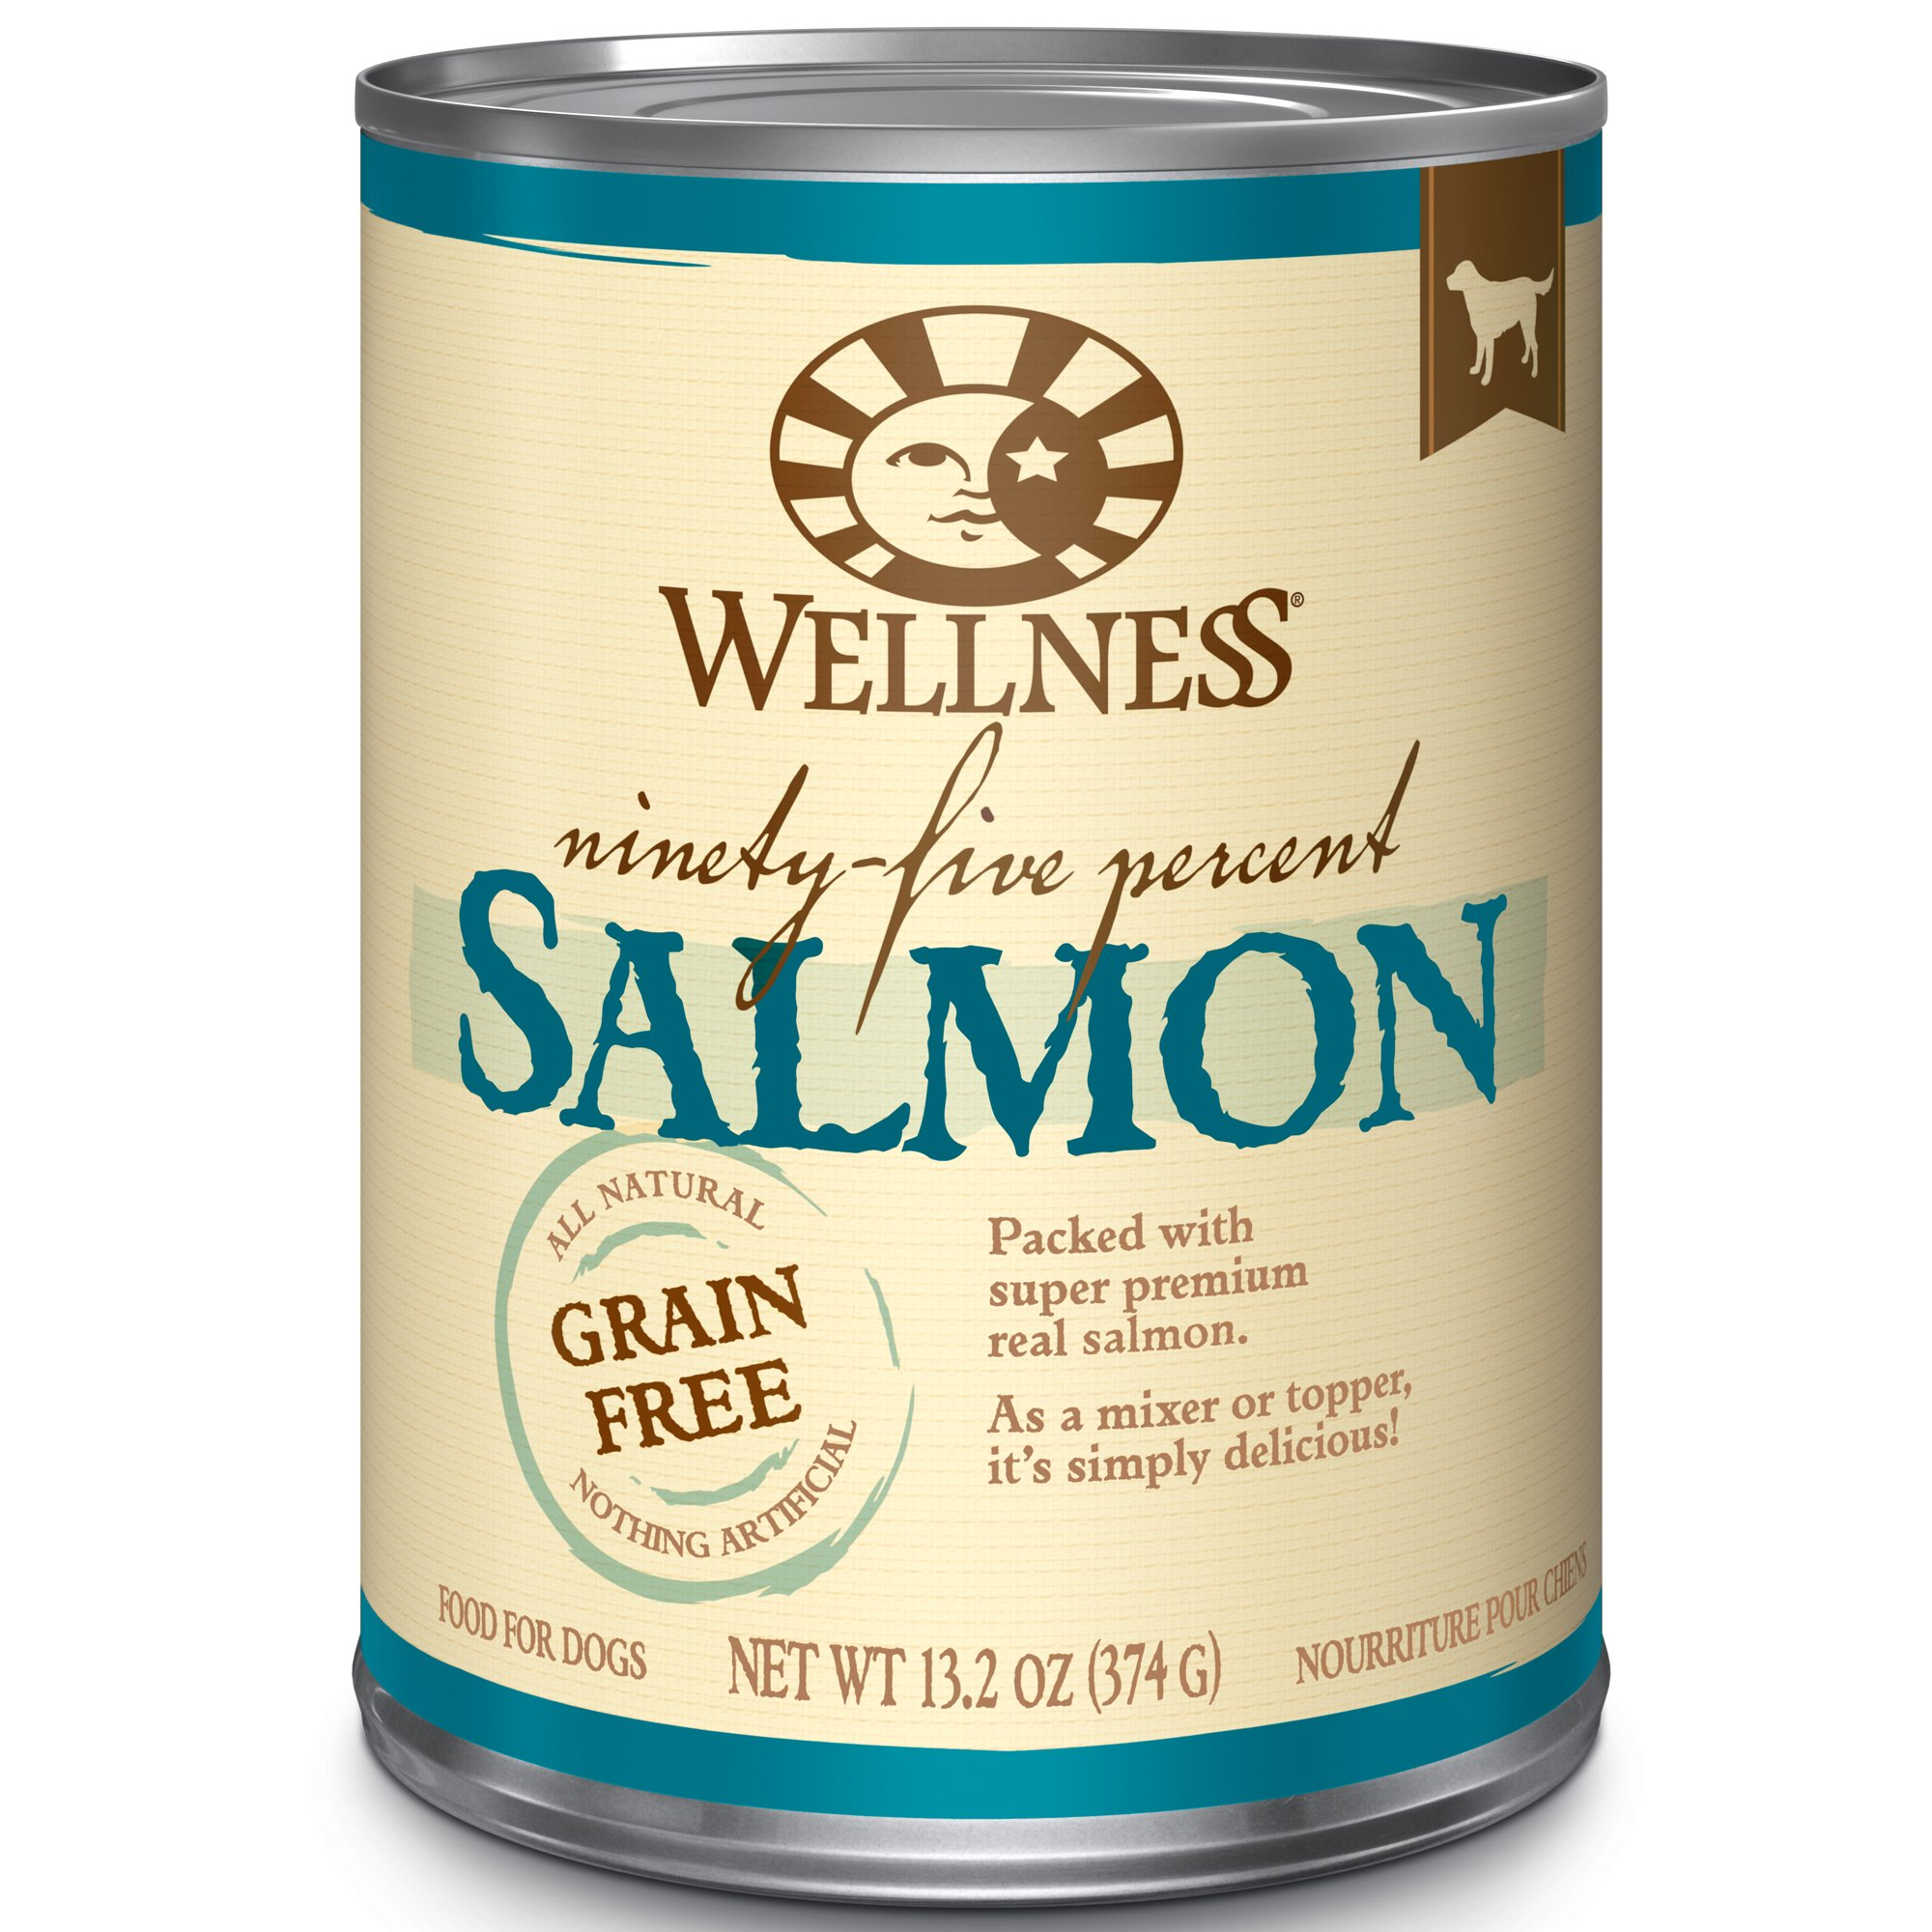 Wellness 95% Salmon Natural Wet Grain Free Canned Dog Food, 13.2-Ounce Can (Pack Of 12) by Wellness Natural Pet Food